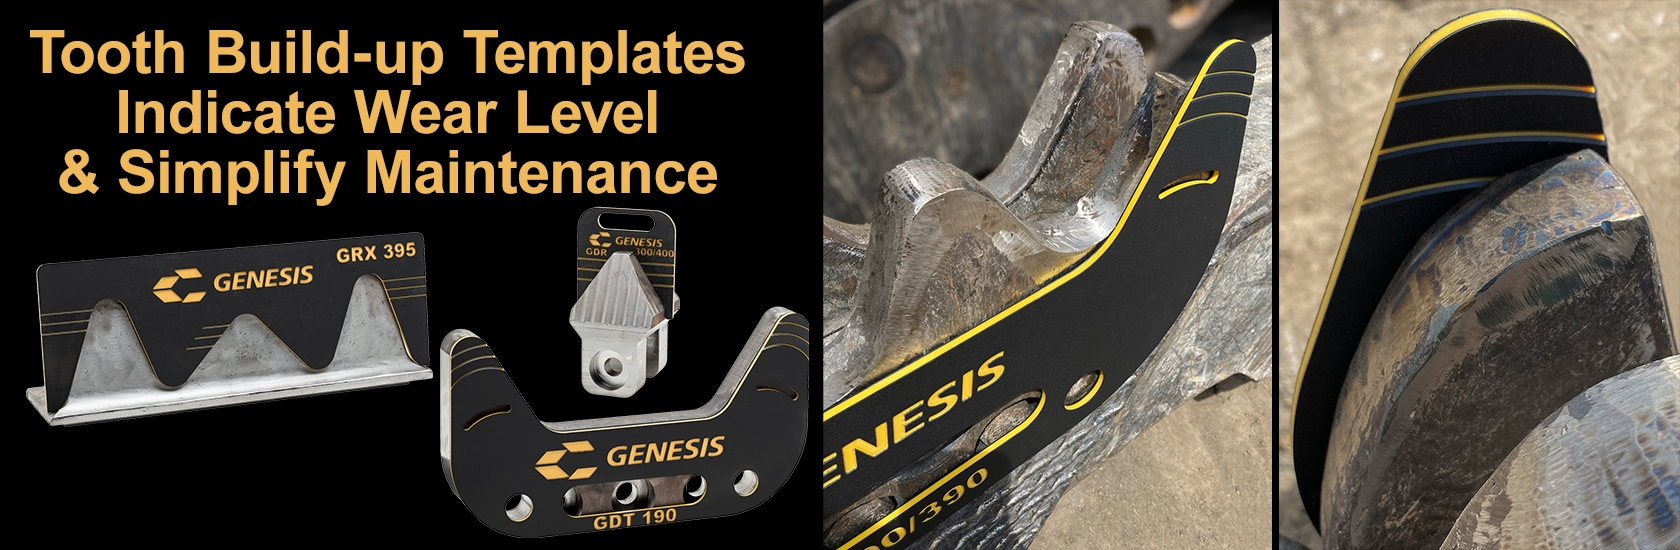 Genesis Tooth Build-up Template Image